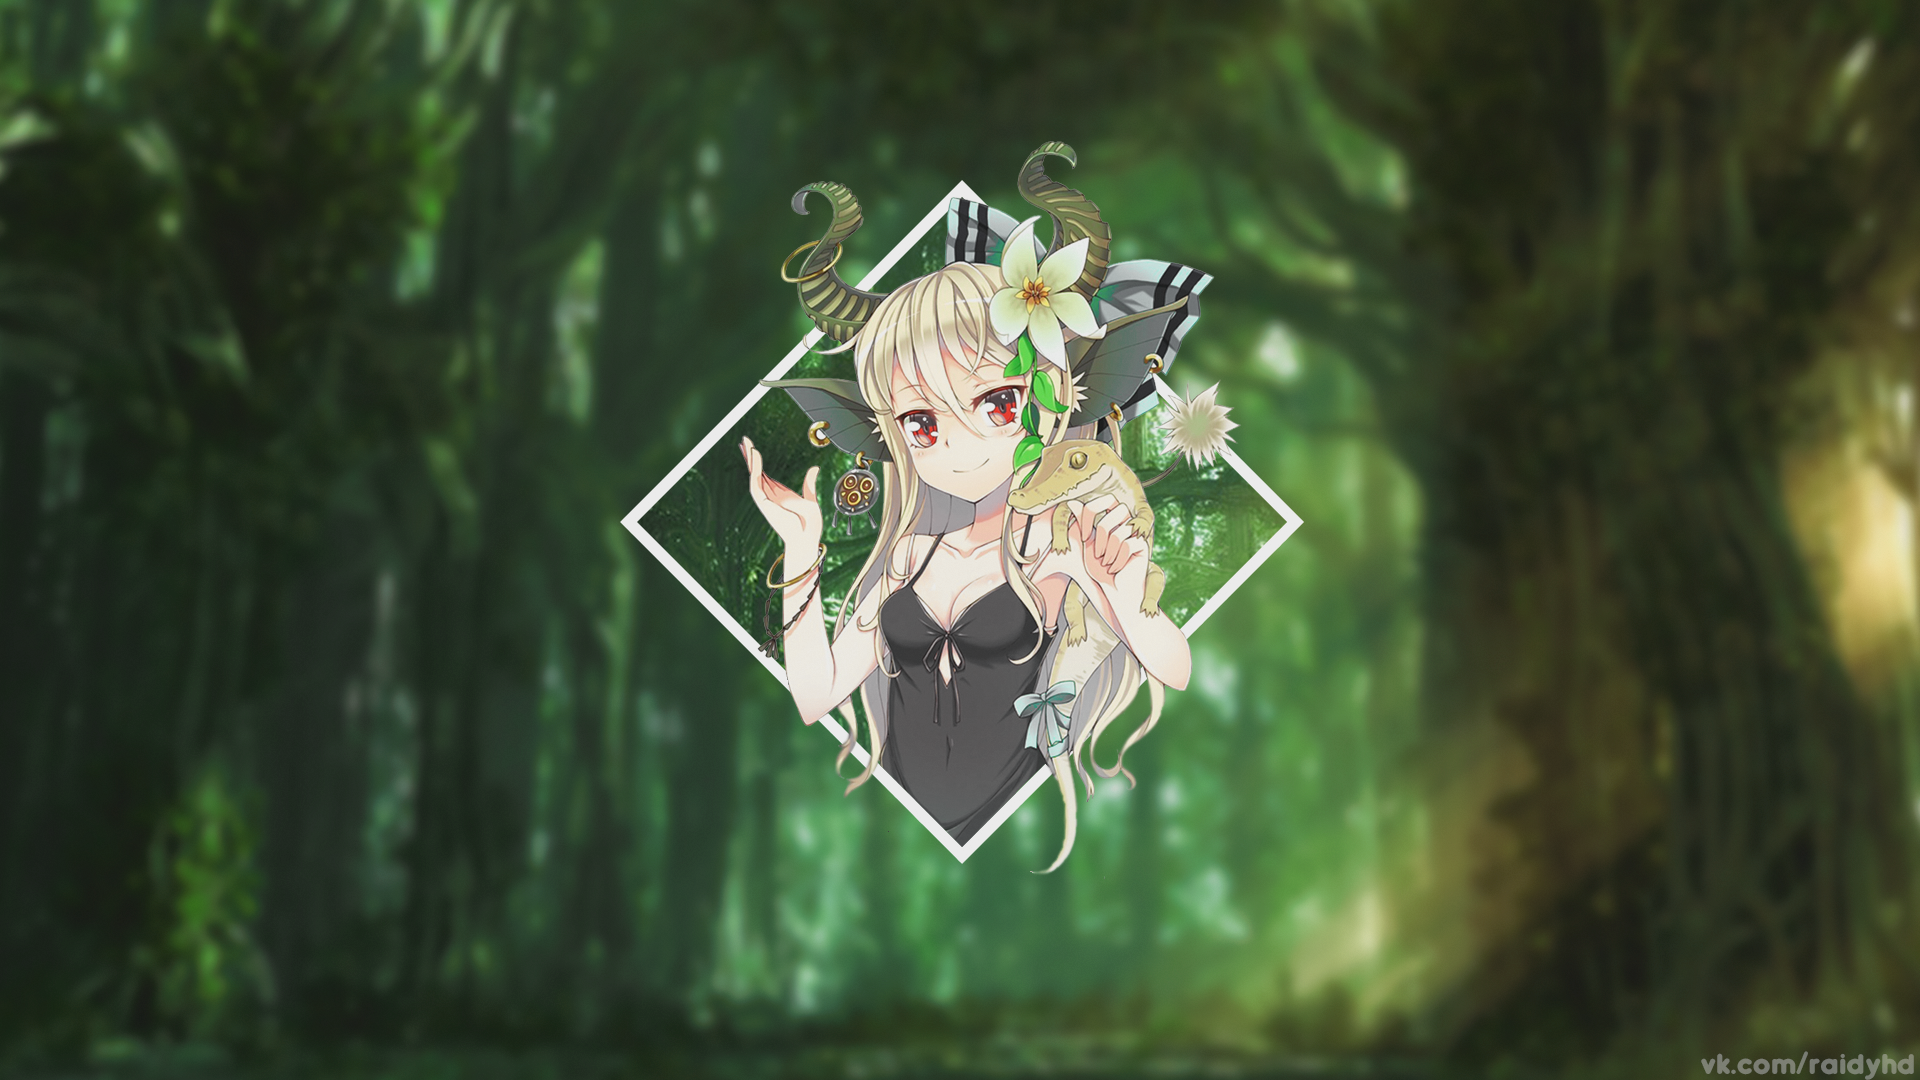 Anime X Anime Girls Anime Forest Blurred Picture In Picture